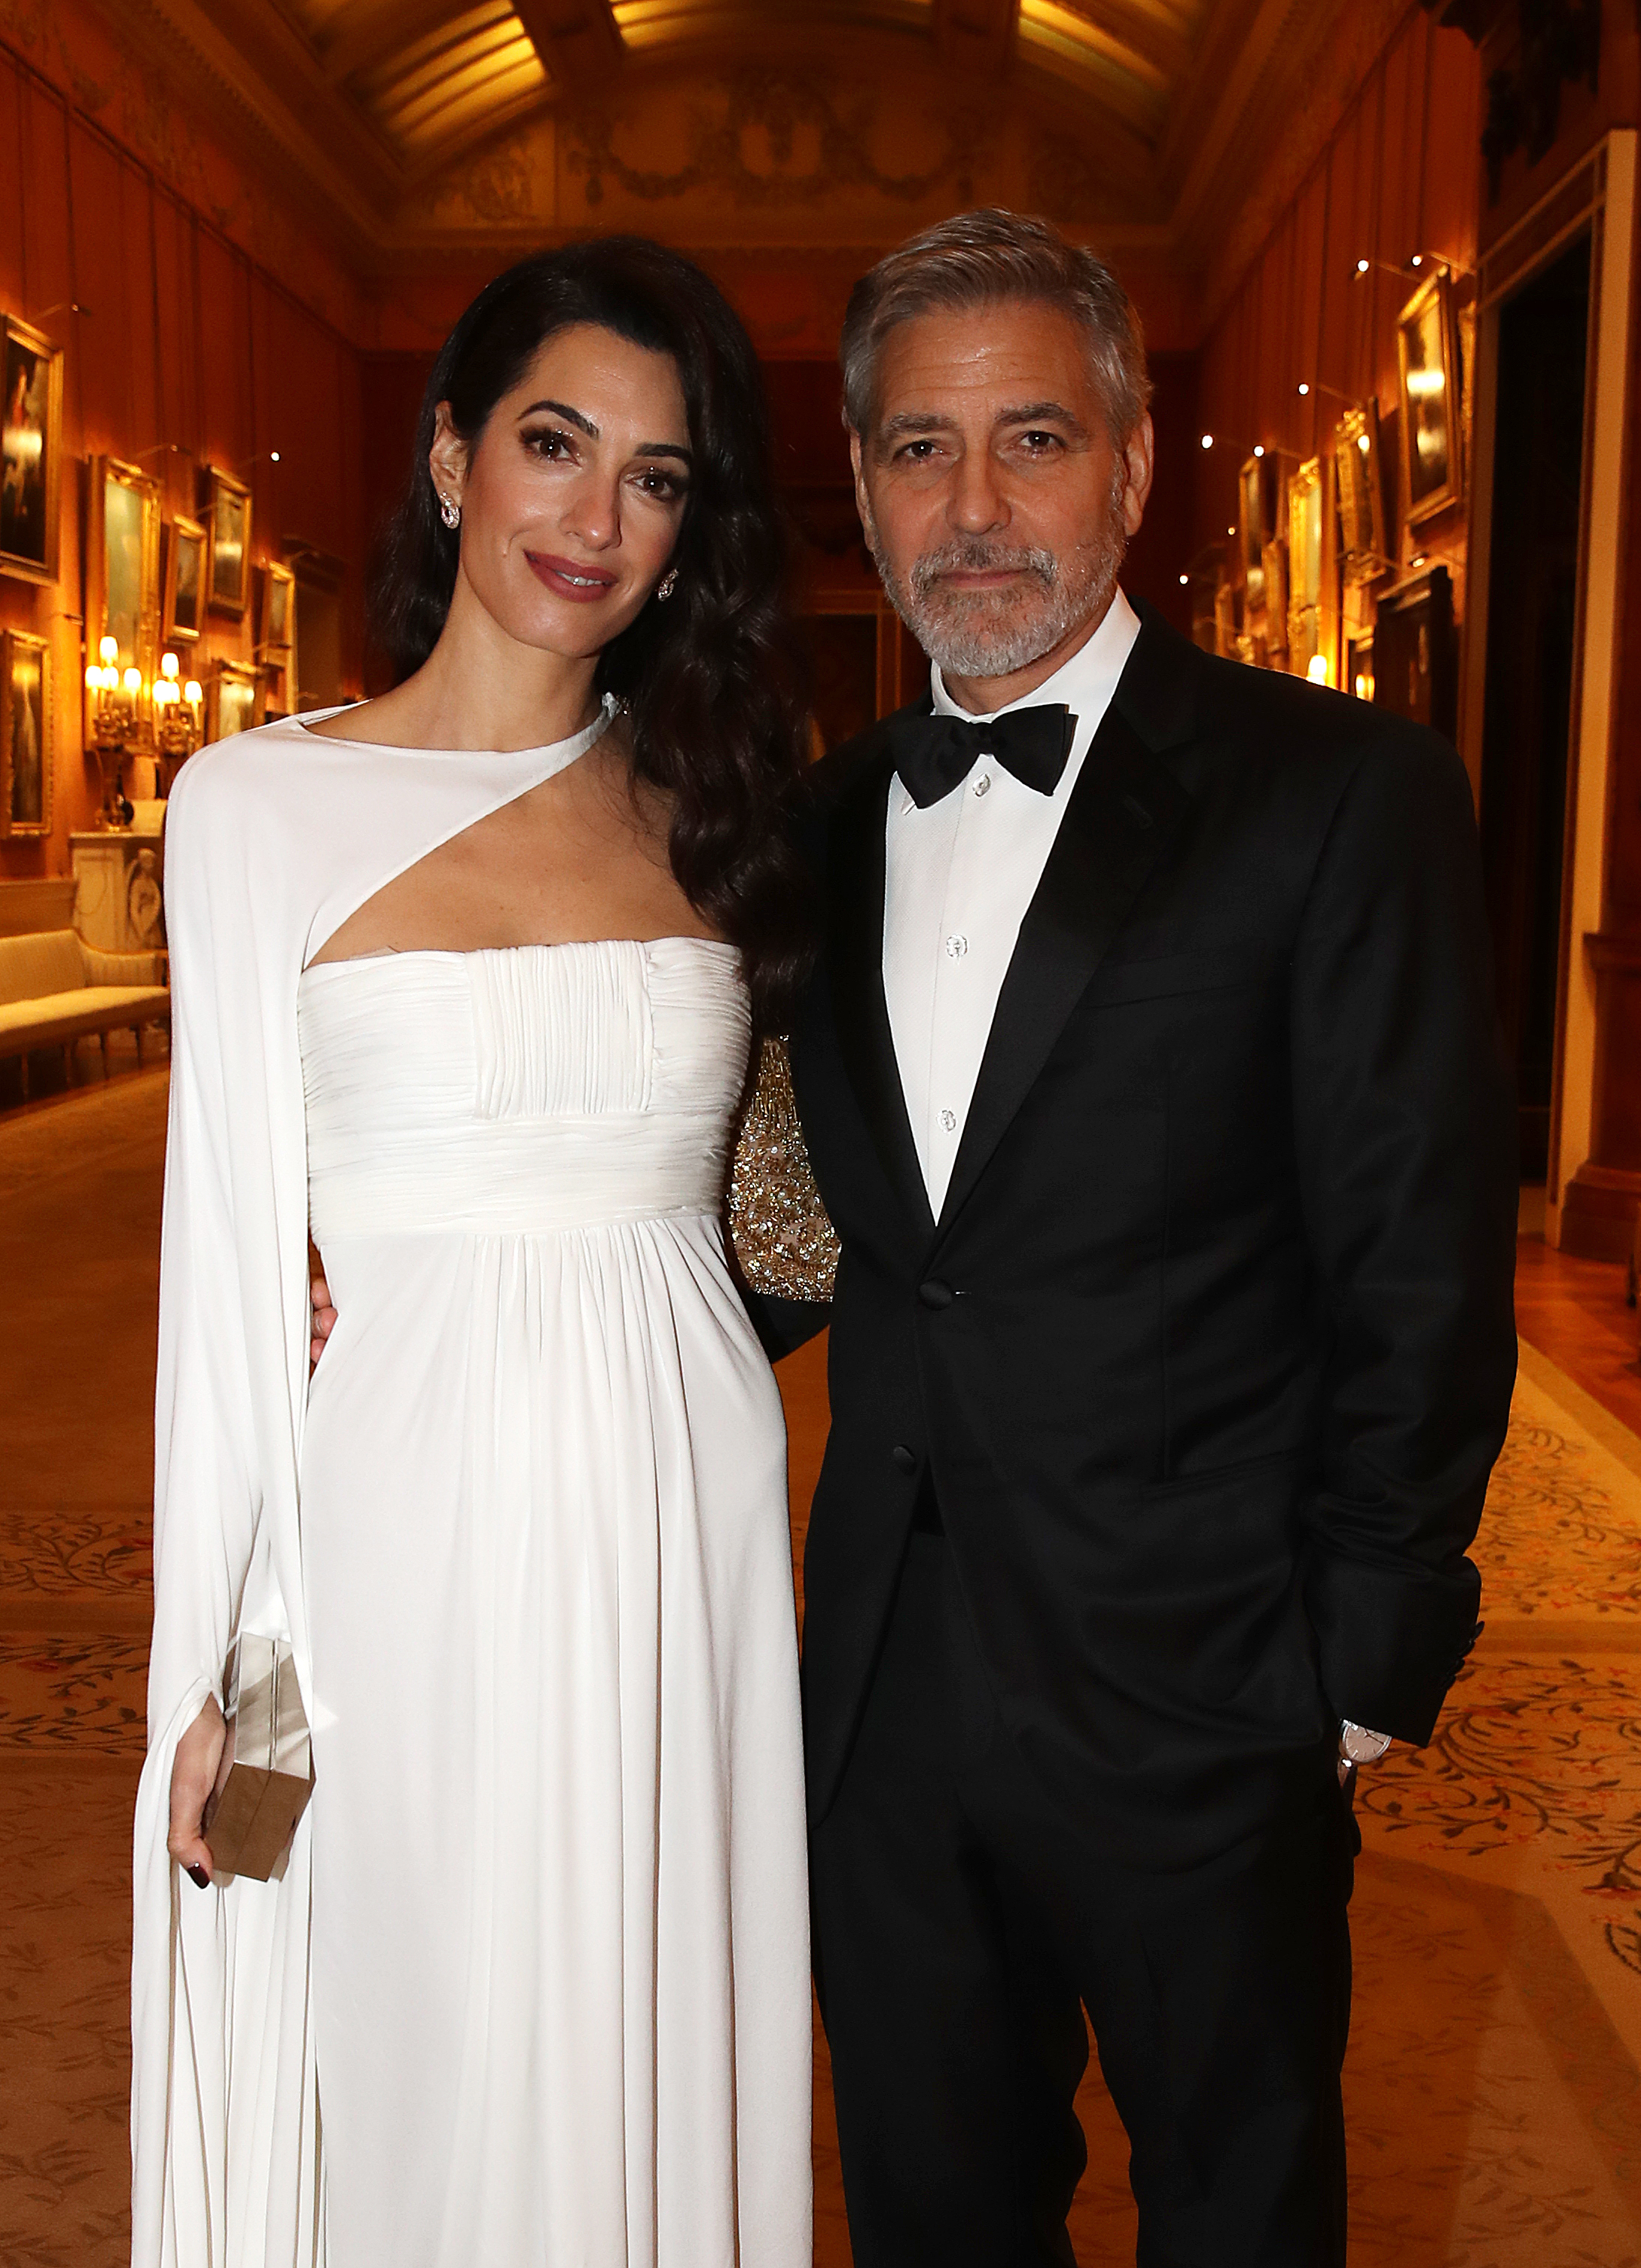 George Clooney Opens Up About Protecting His Kids Amid Wife Amal's